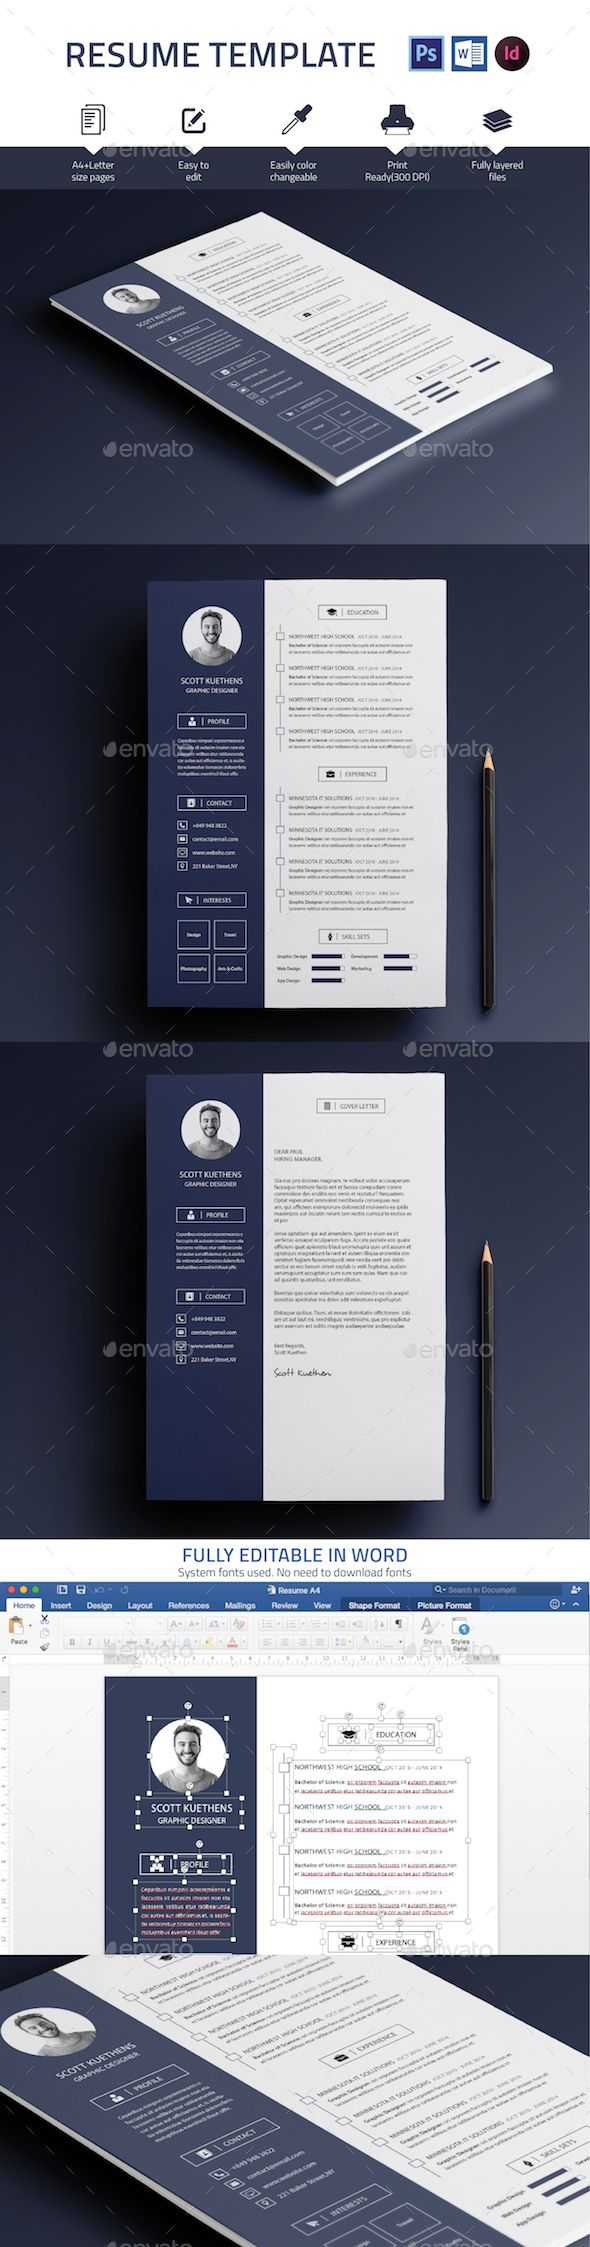 Resume Template by tontuz A clean modern